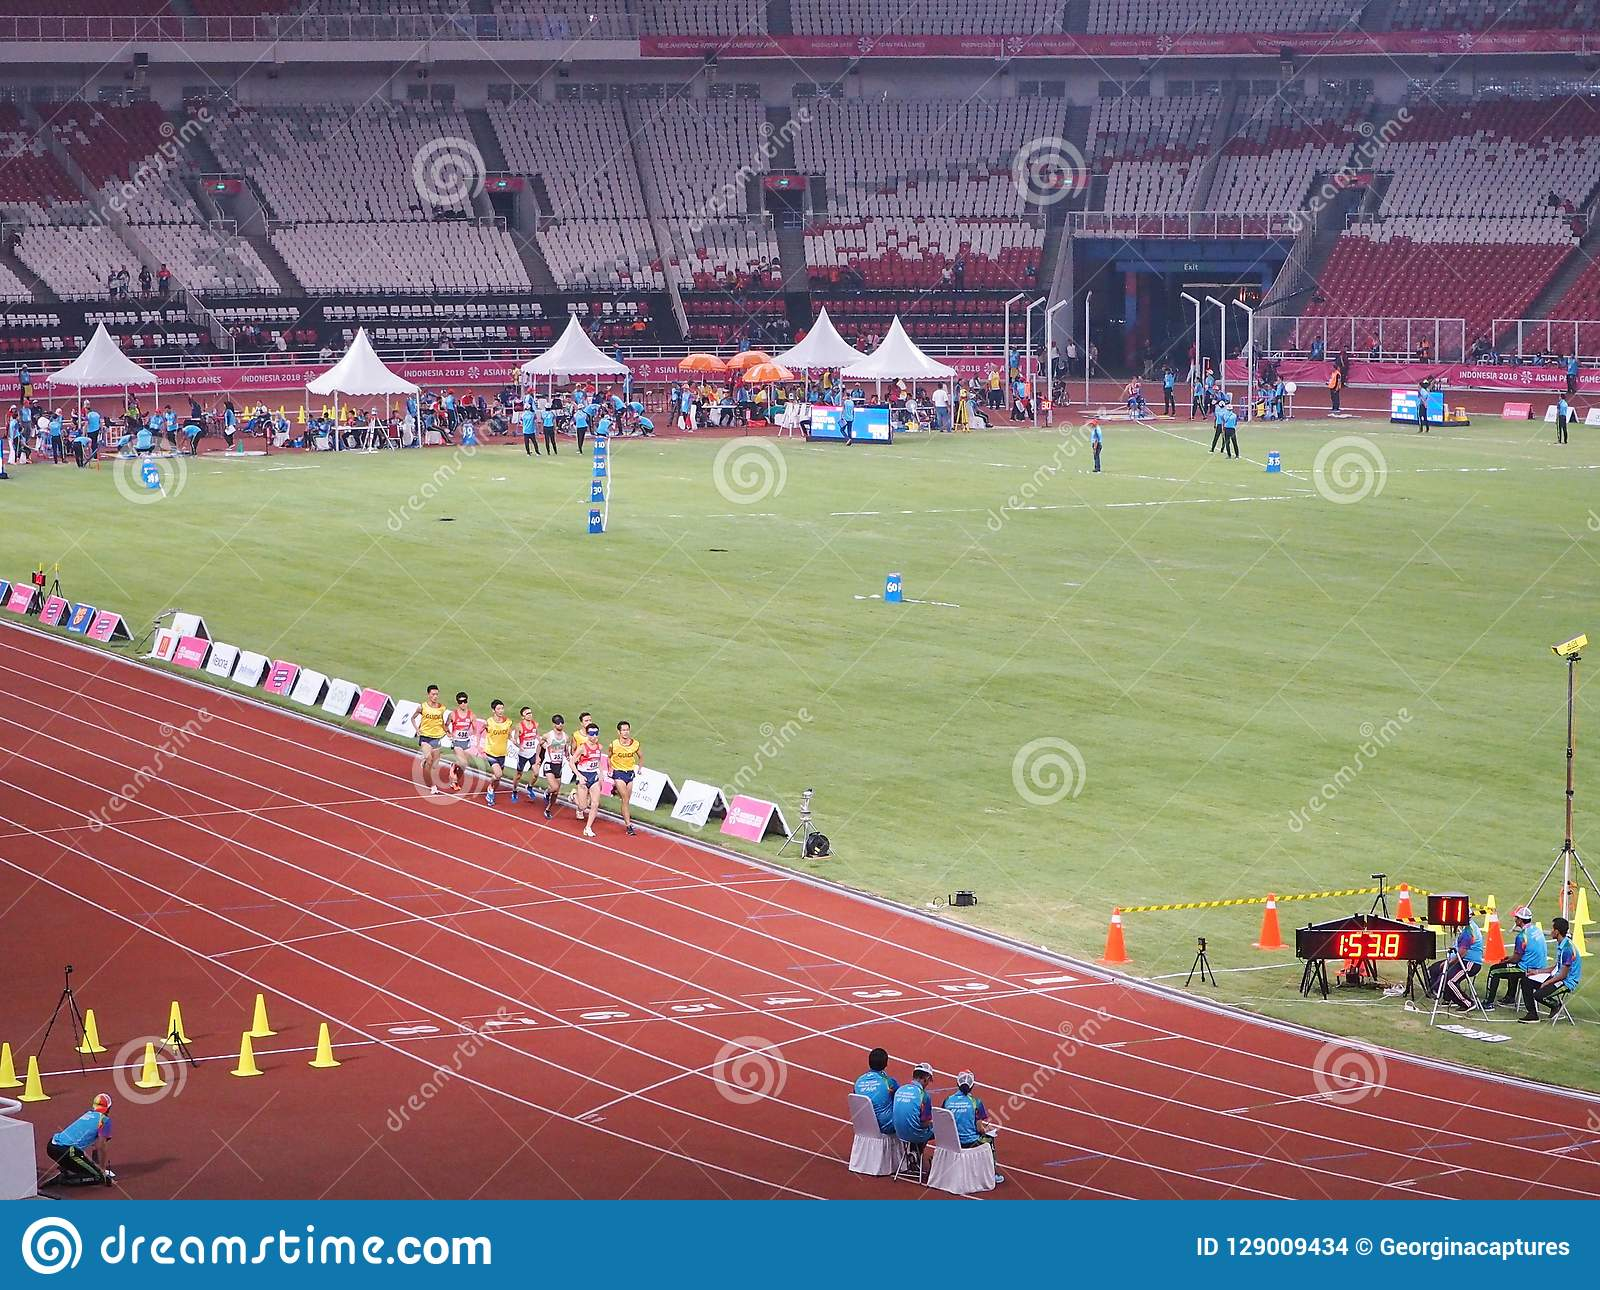 Gbk Sports Complex In Senayan Editorial Stock Image Image Of Main